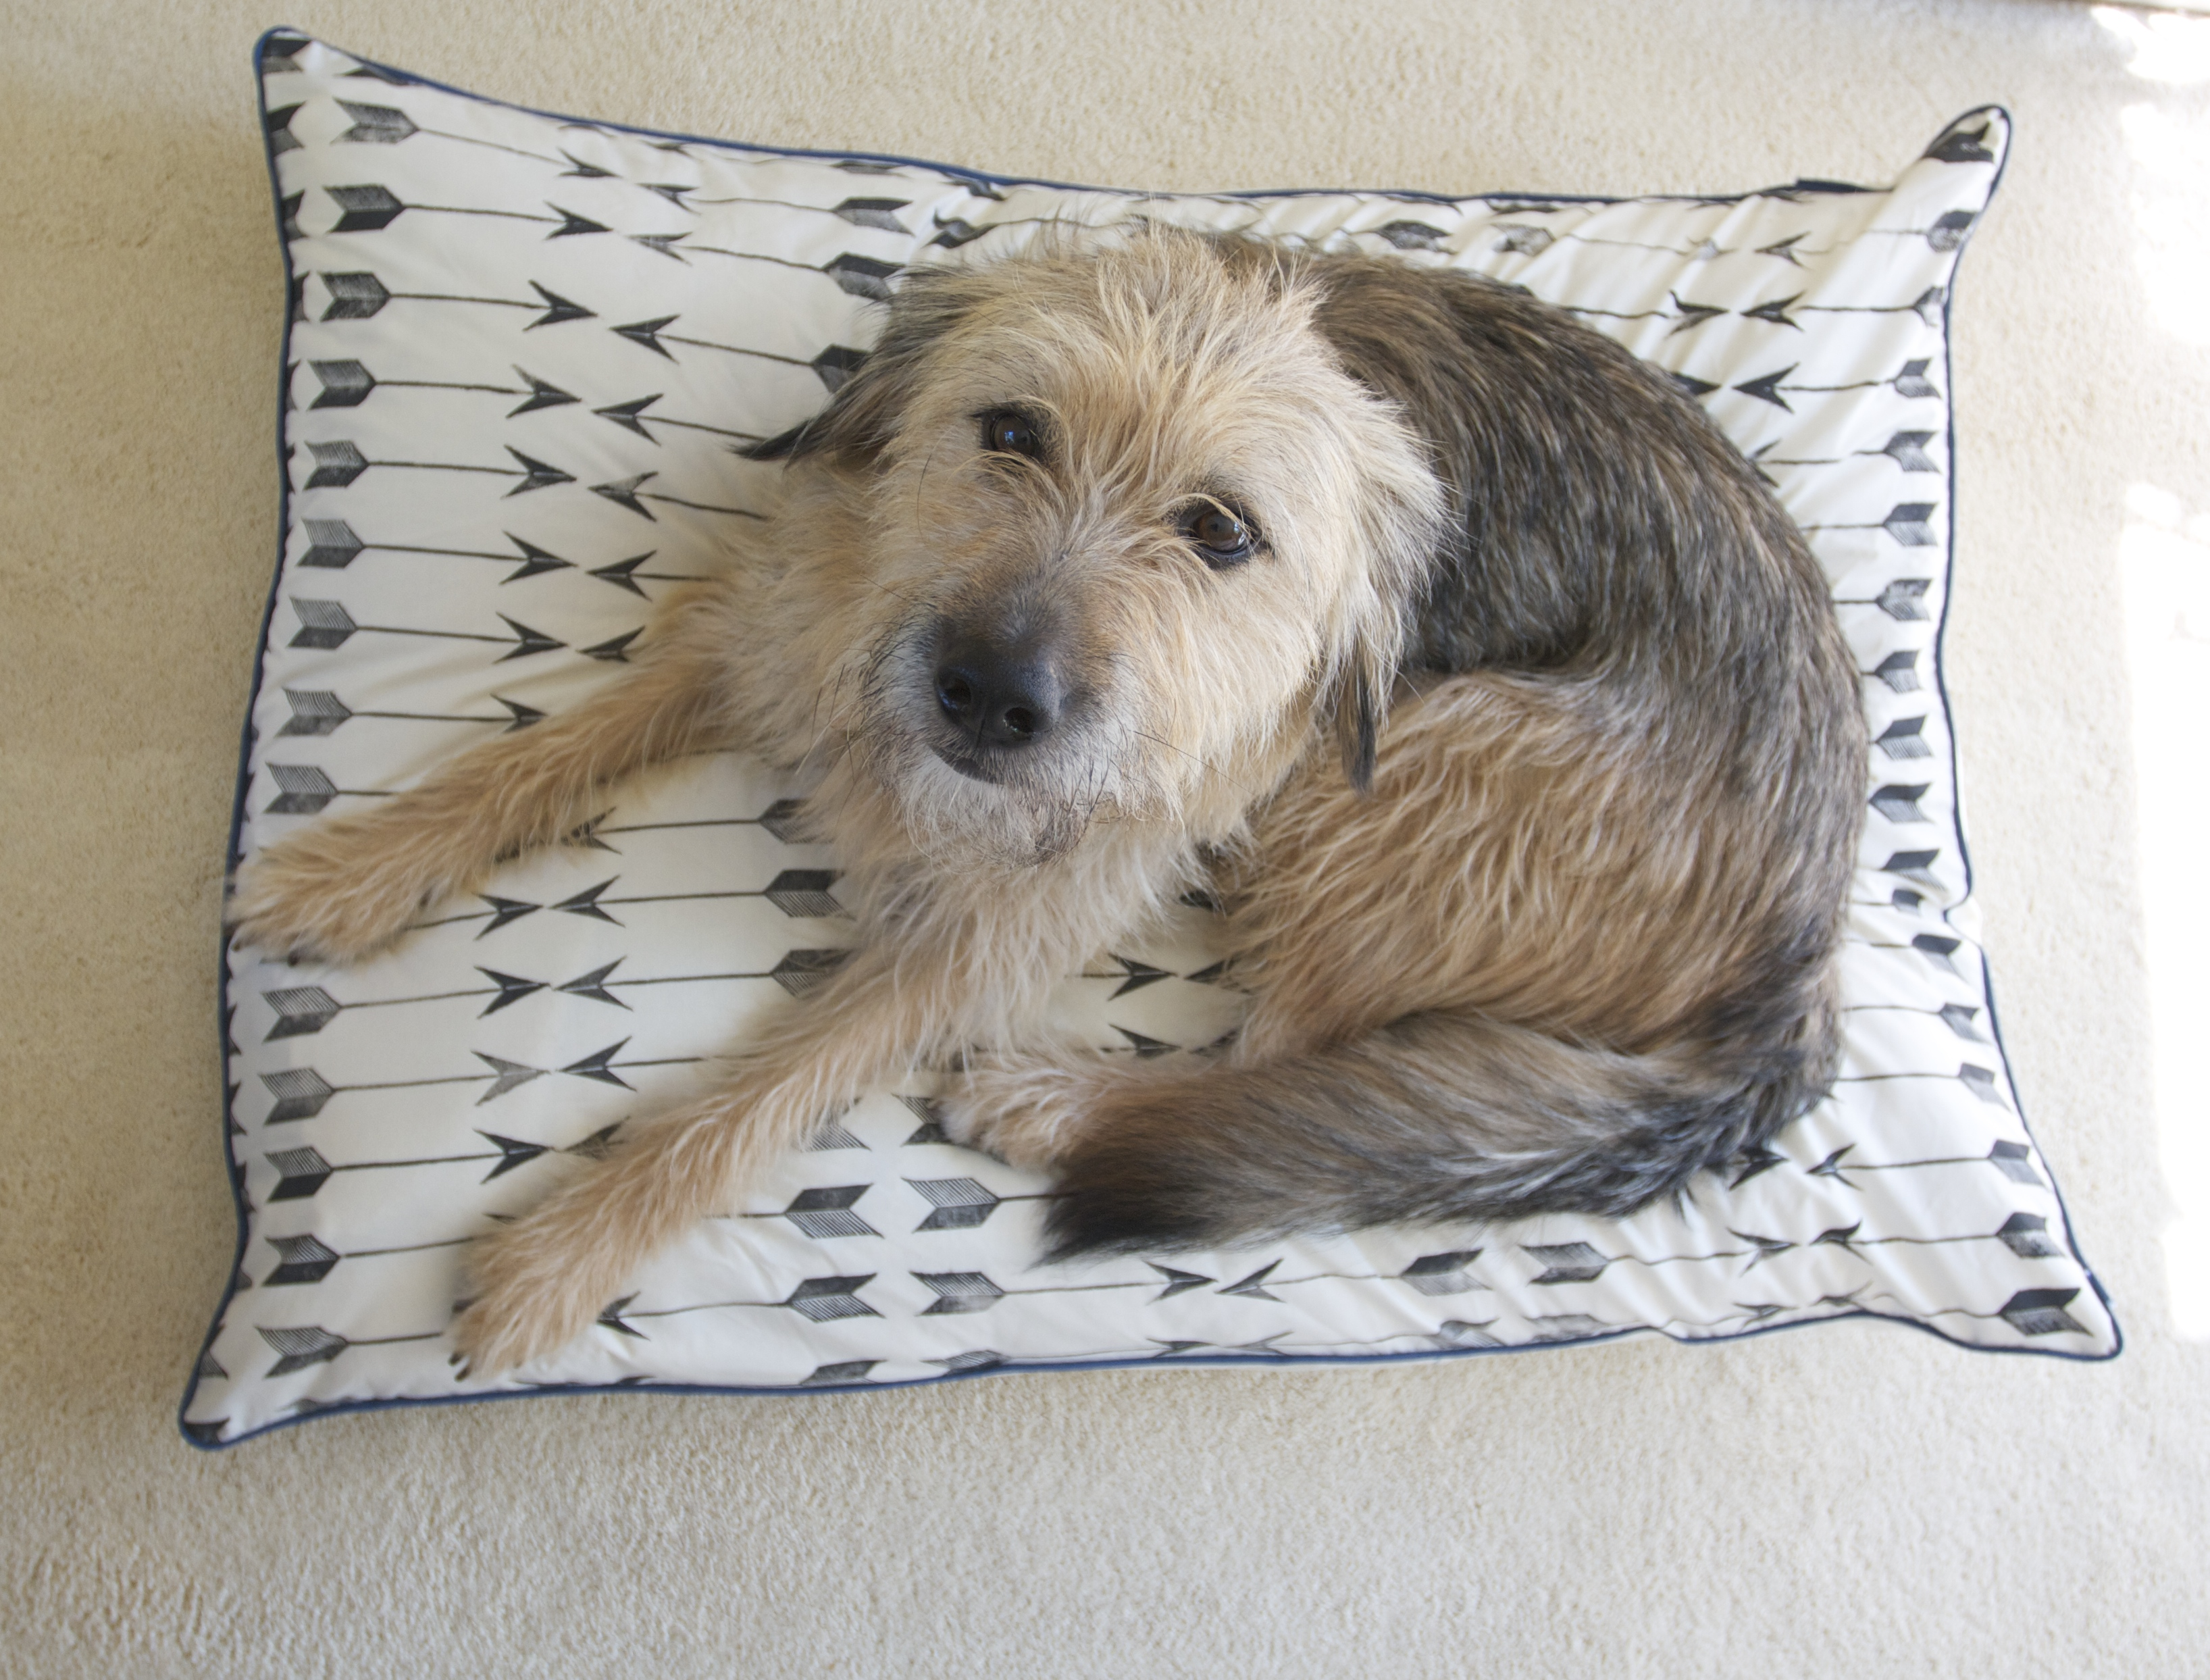 It's Official! Celebrating the Adoption of Winifred with a Block Printed Dog Bed